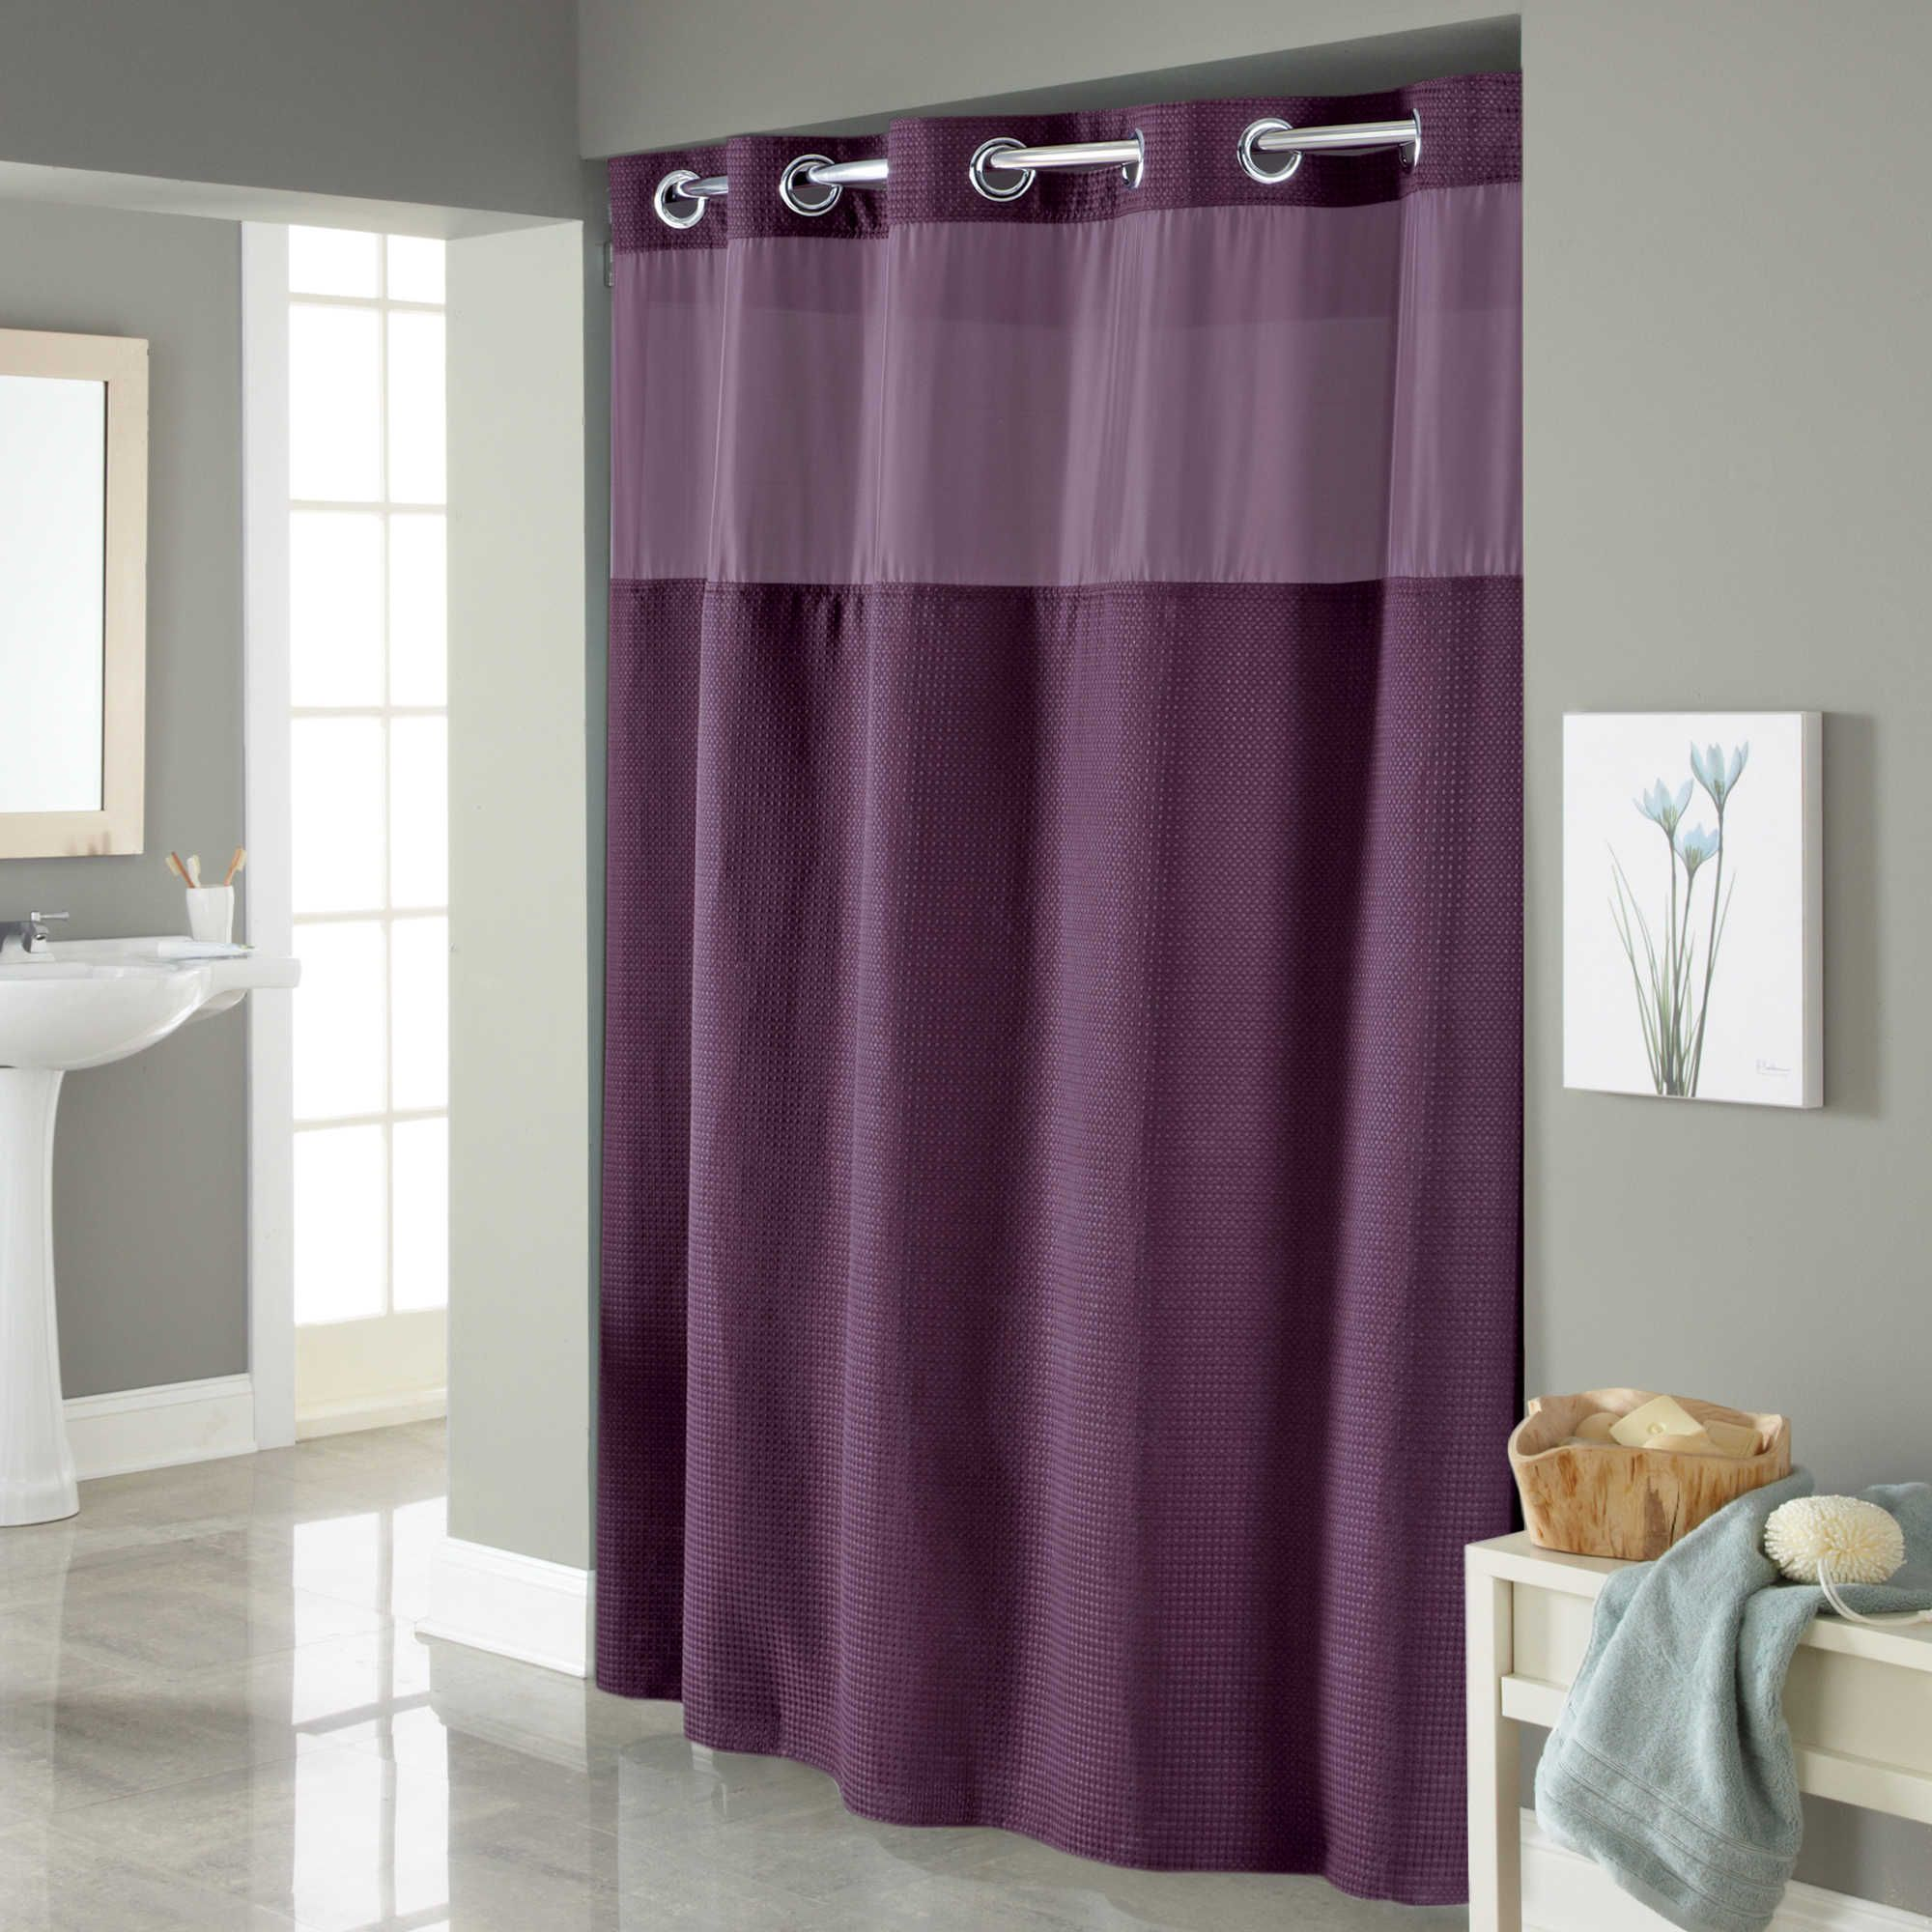 Purple shower curtain liner - Purple Shower Curtain Liner 5